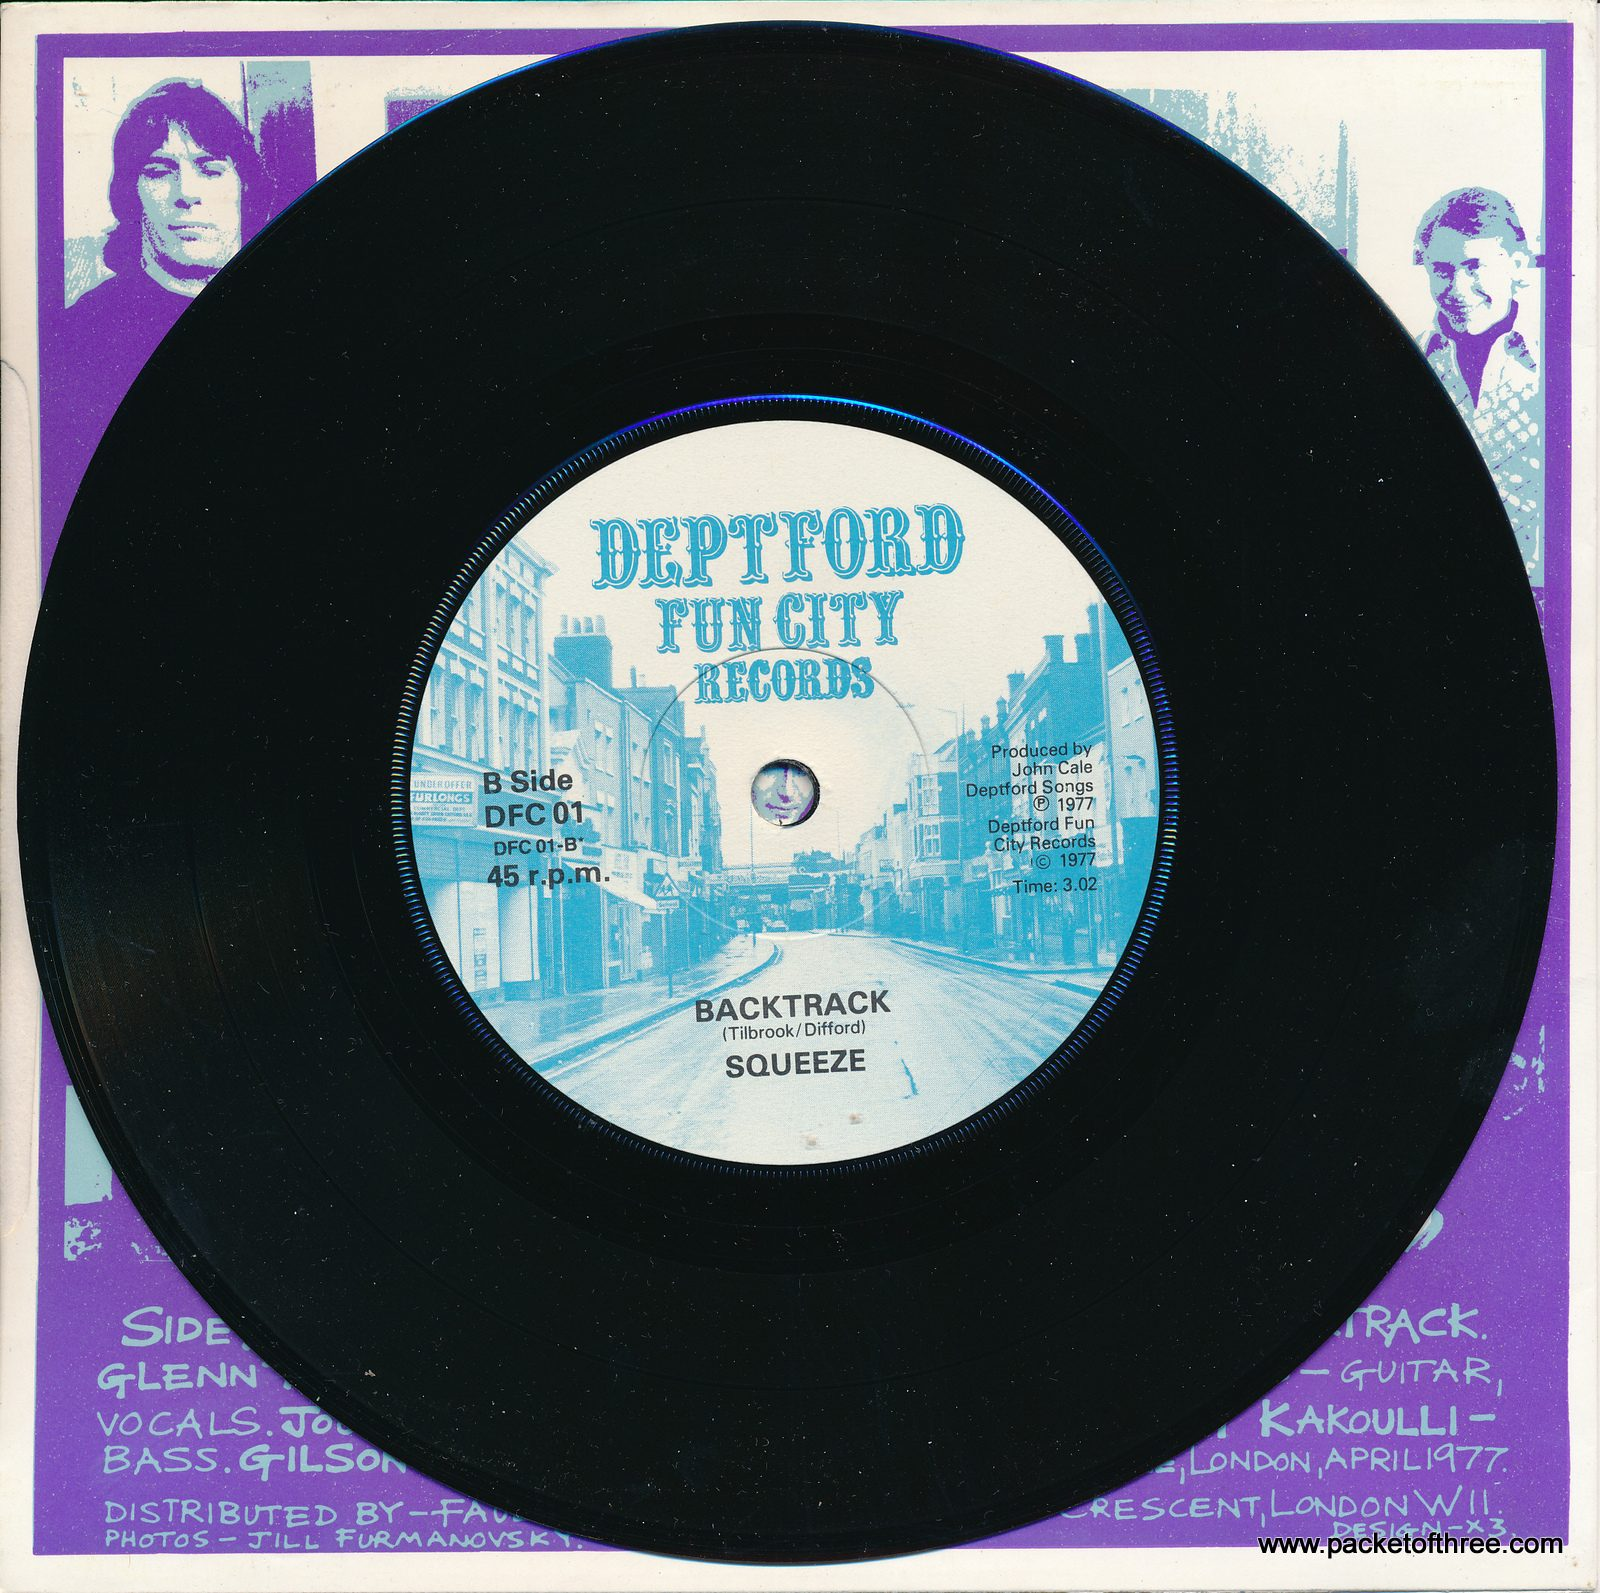 Packet of Three – UK – 7″ – picture sleeve – reissue